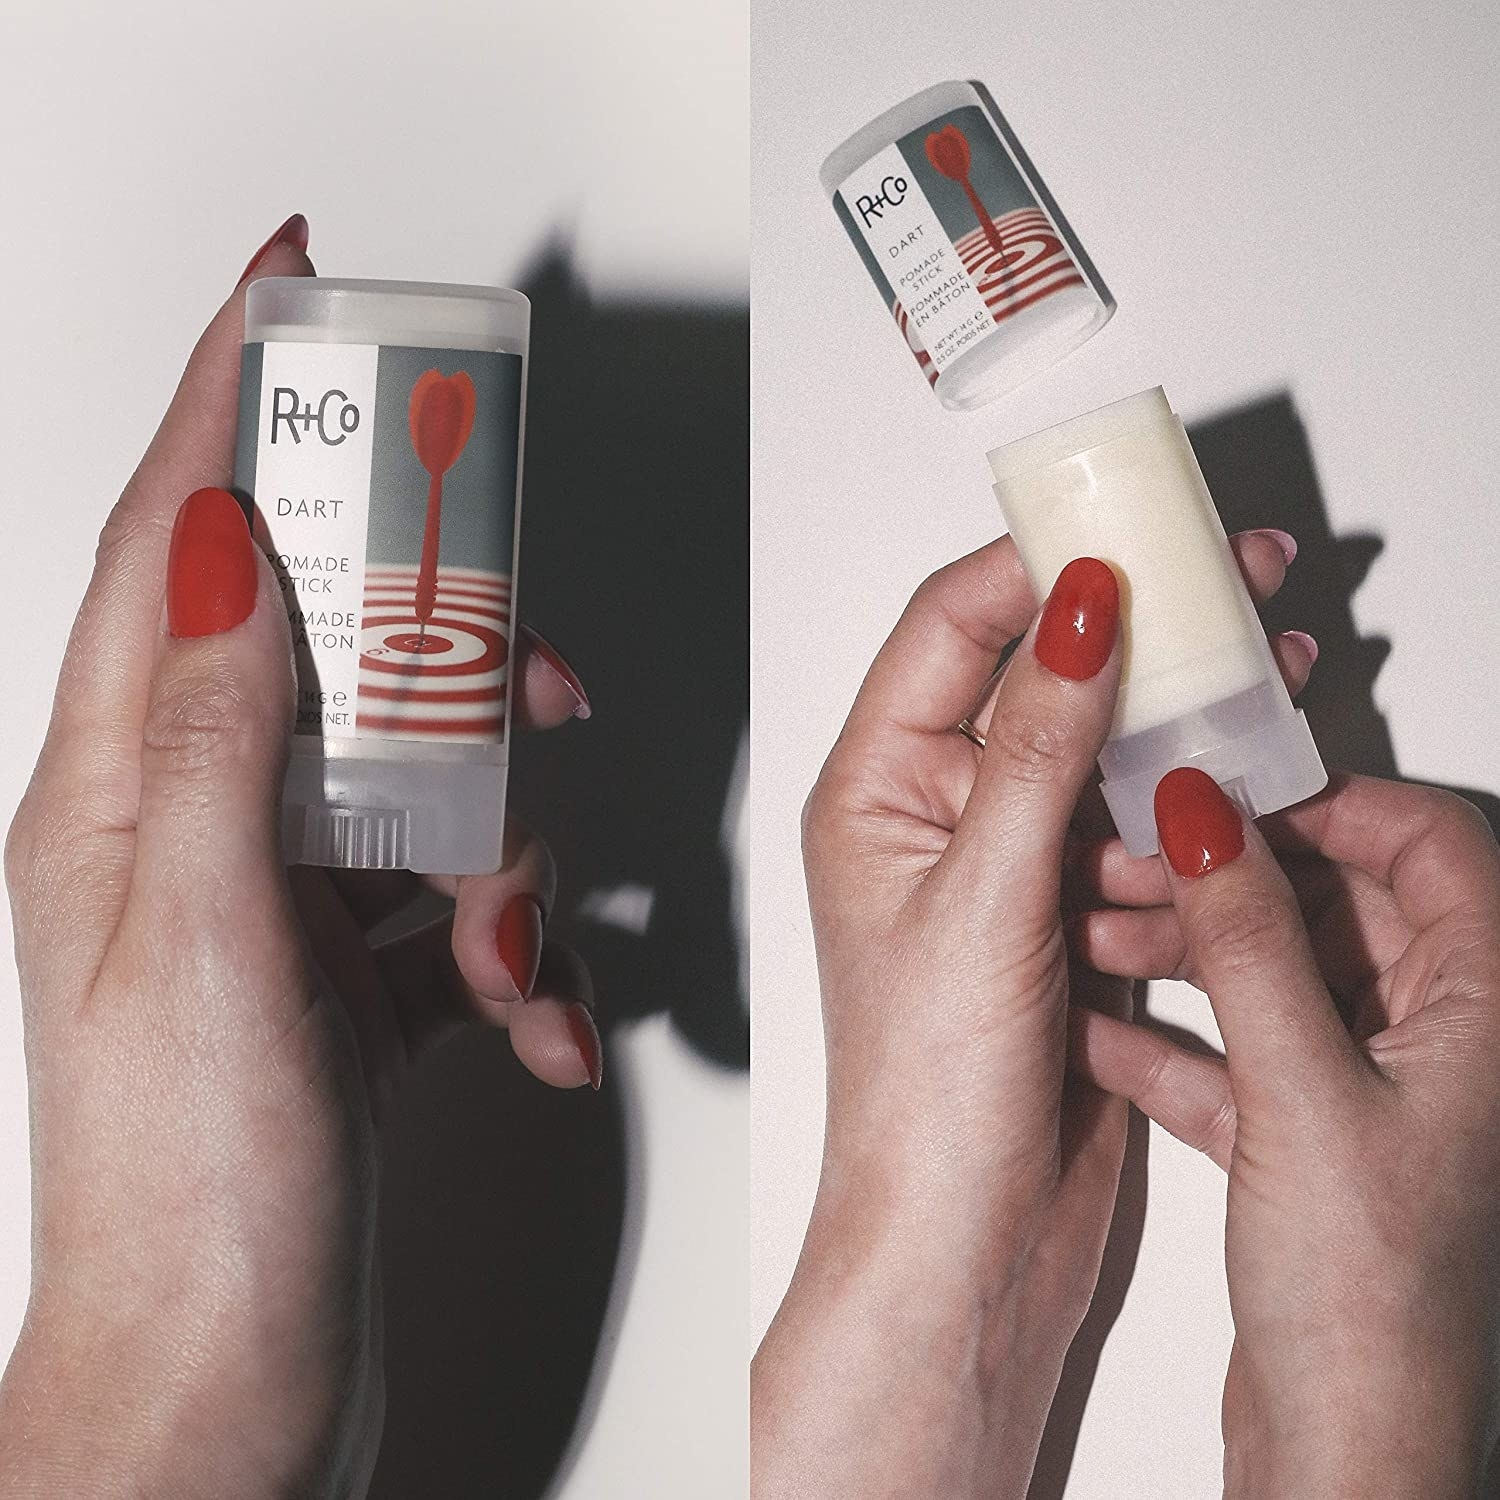 A person holding a pomade stick